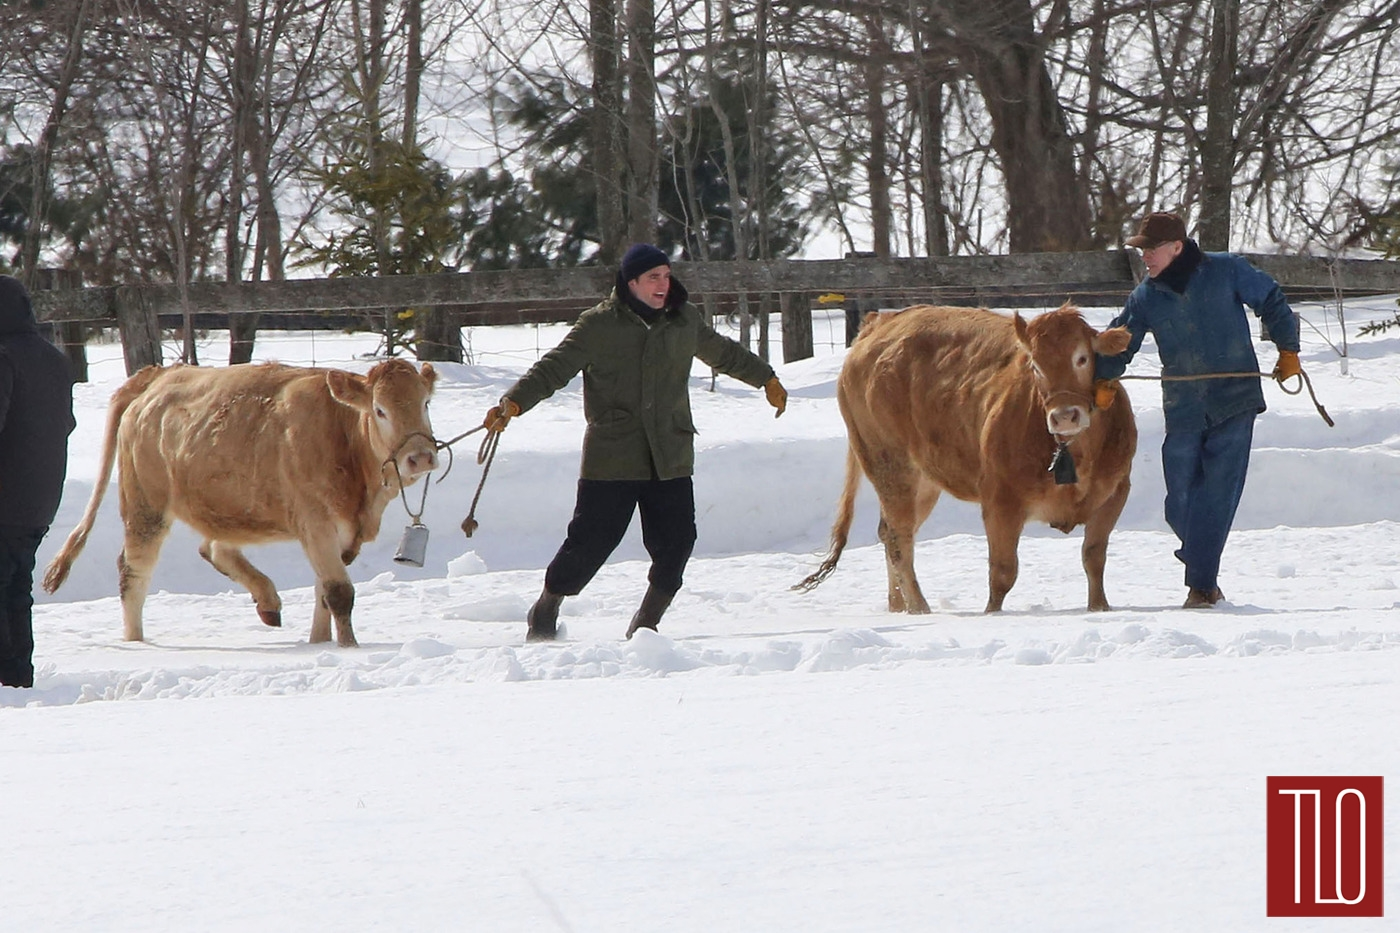 Robert-Pattinson-On-Set-Life-Snow-Cows-Tom-Lorezo-Site-TLO (1)